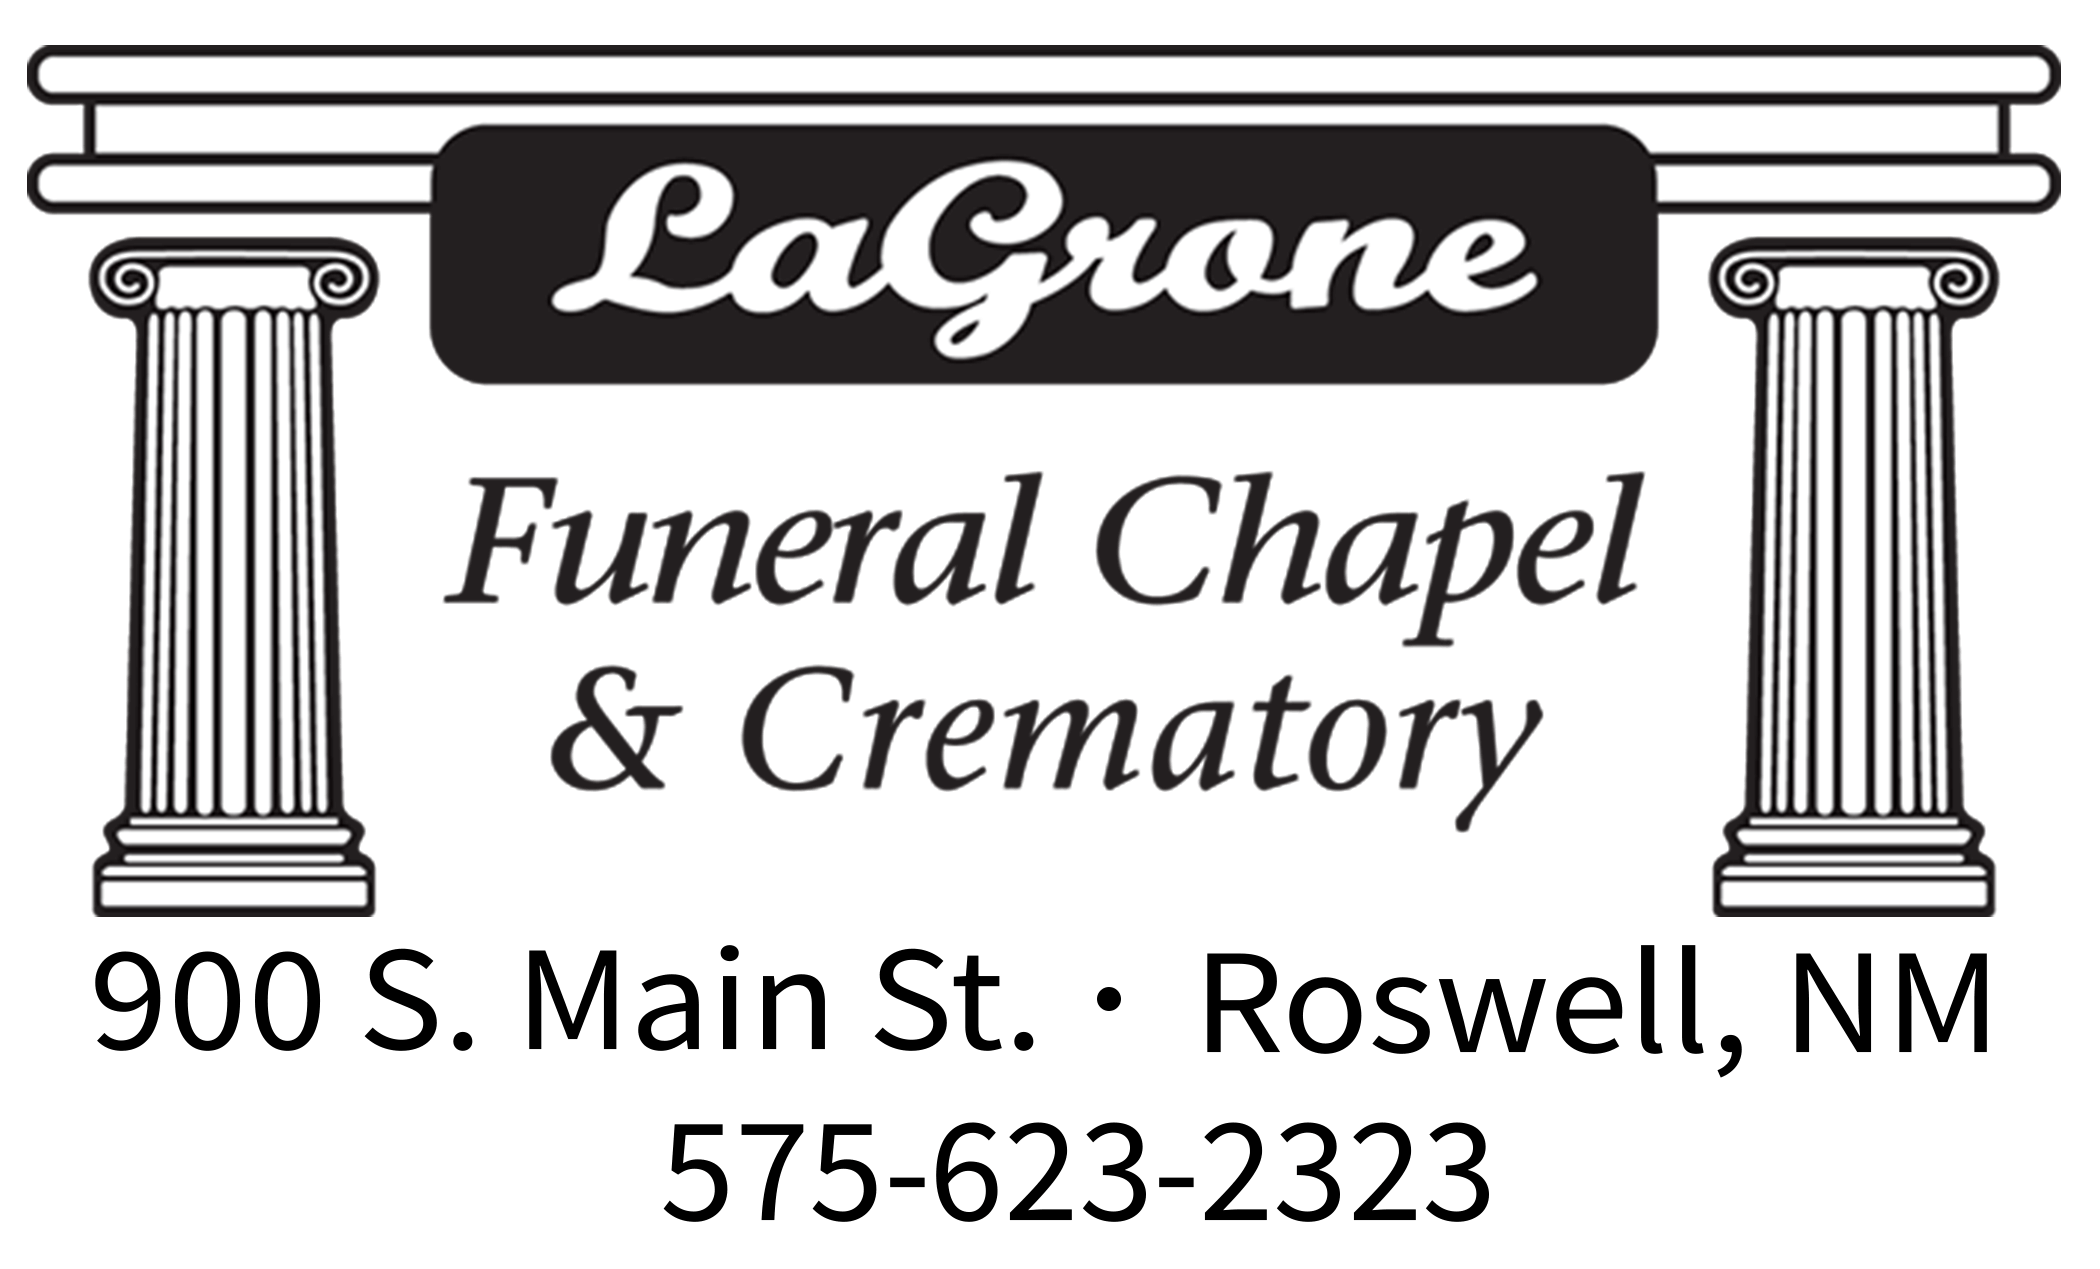 Lagrone Funeral Chapel Roswell Nm Funeral Home And Cremation